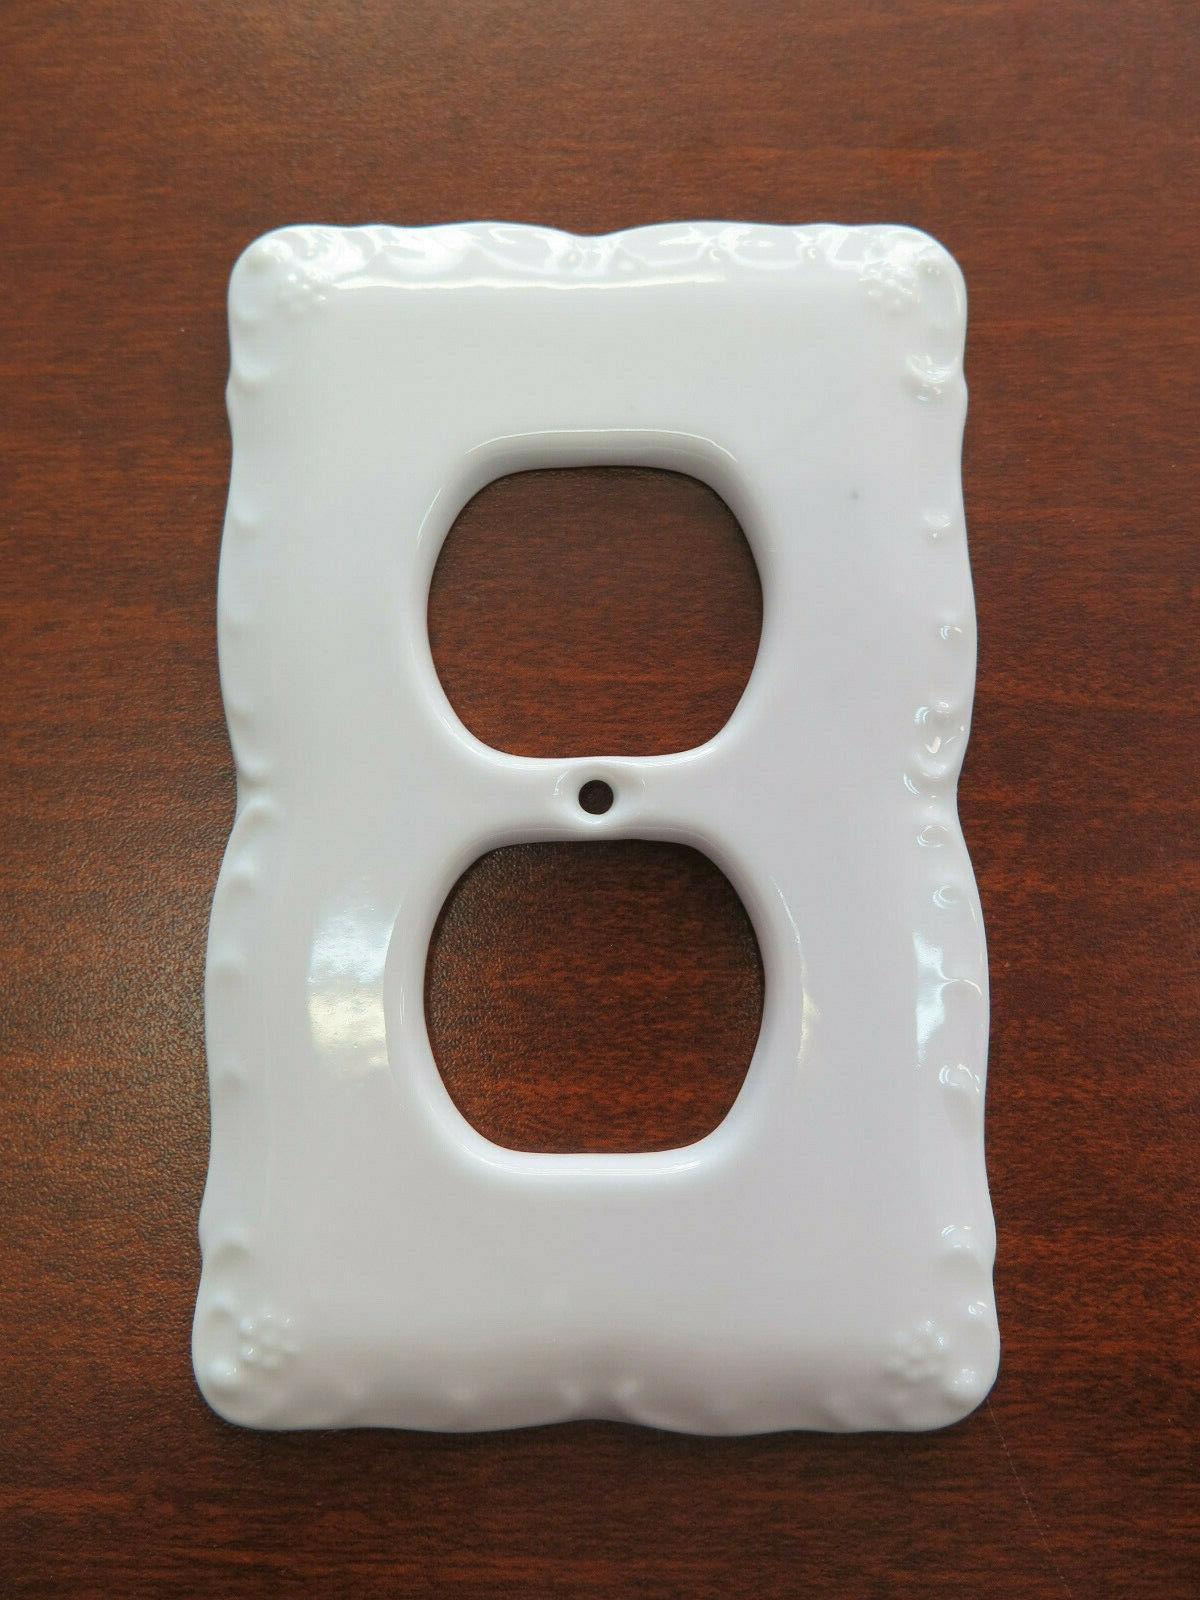 SINGLE WHITE PLATE OUTLET PLUG IN CERAMIC